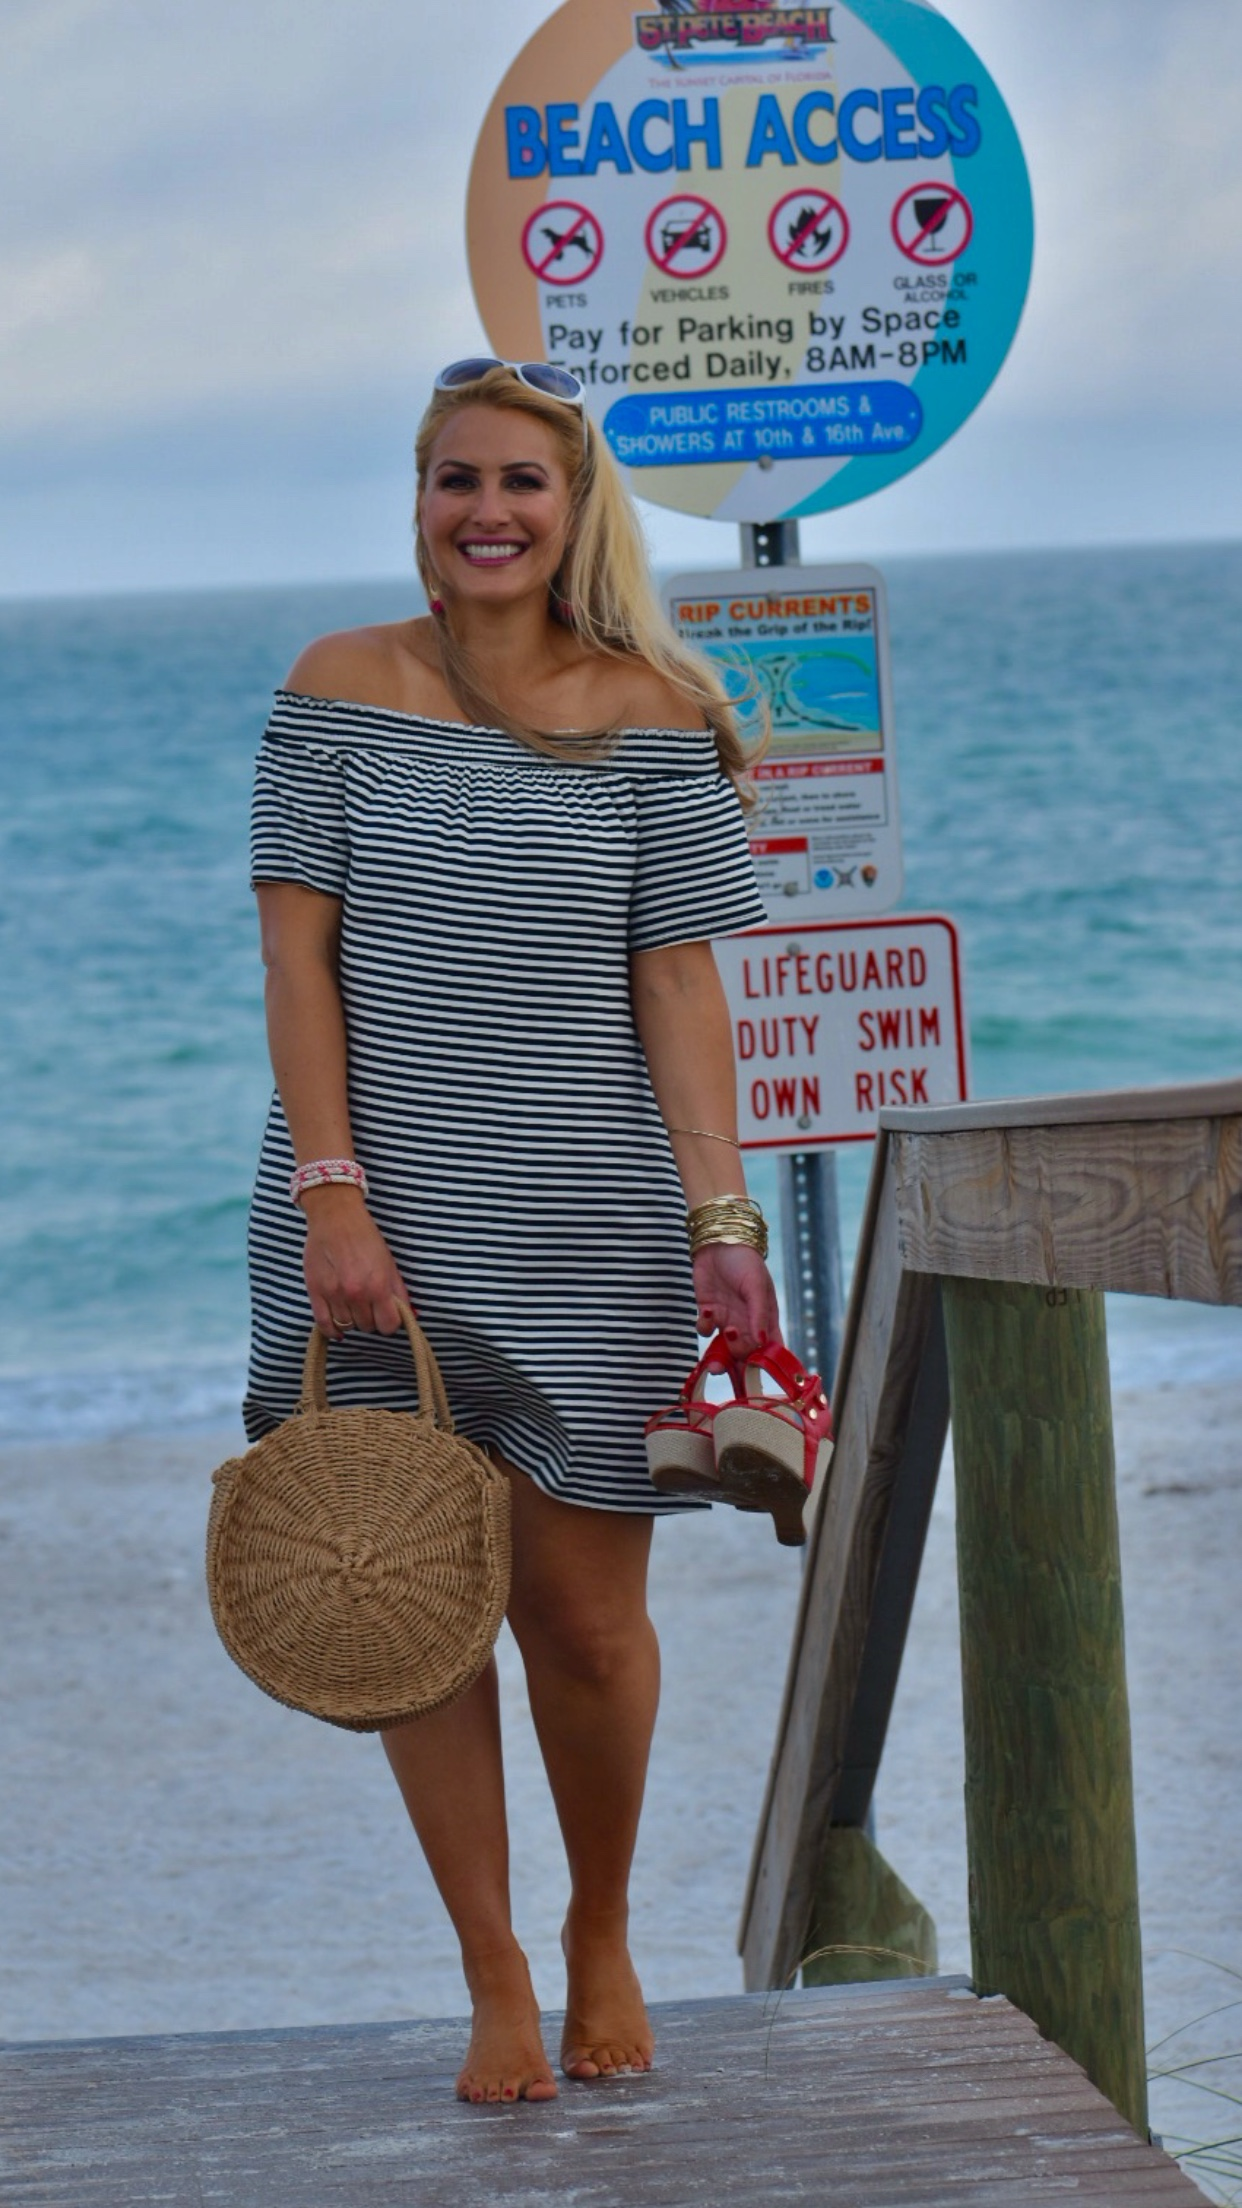 Black and White Striped Dress, Off The Shoulder Dress, Round Straw Handbag, Shift Dress, Red Wedge Heels in Saint Petersburg Florida